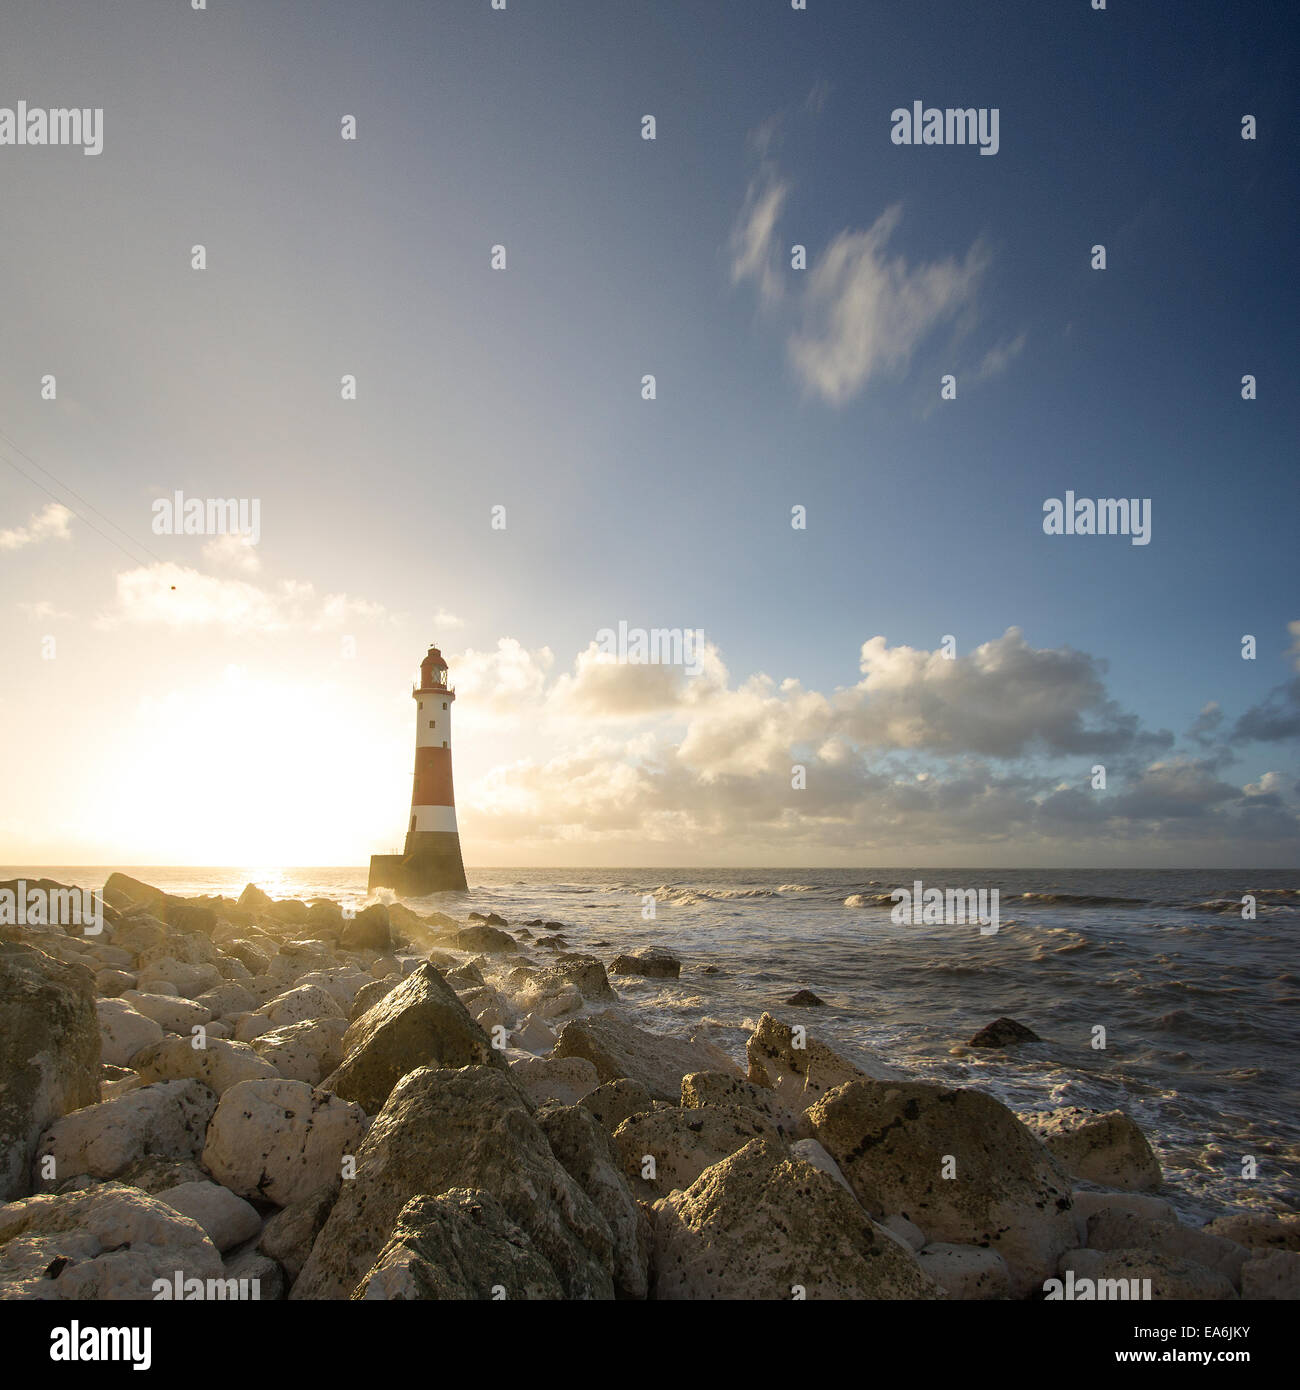 UK, England, East Sussex, View of Beachy Head lighthouse - Stock Image